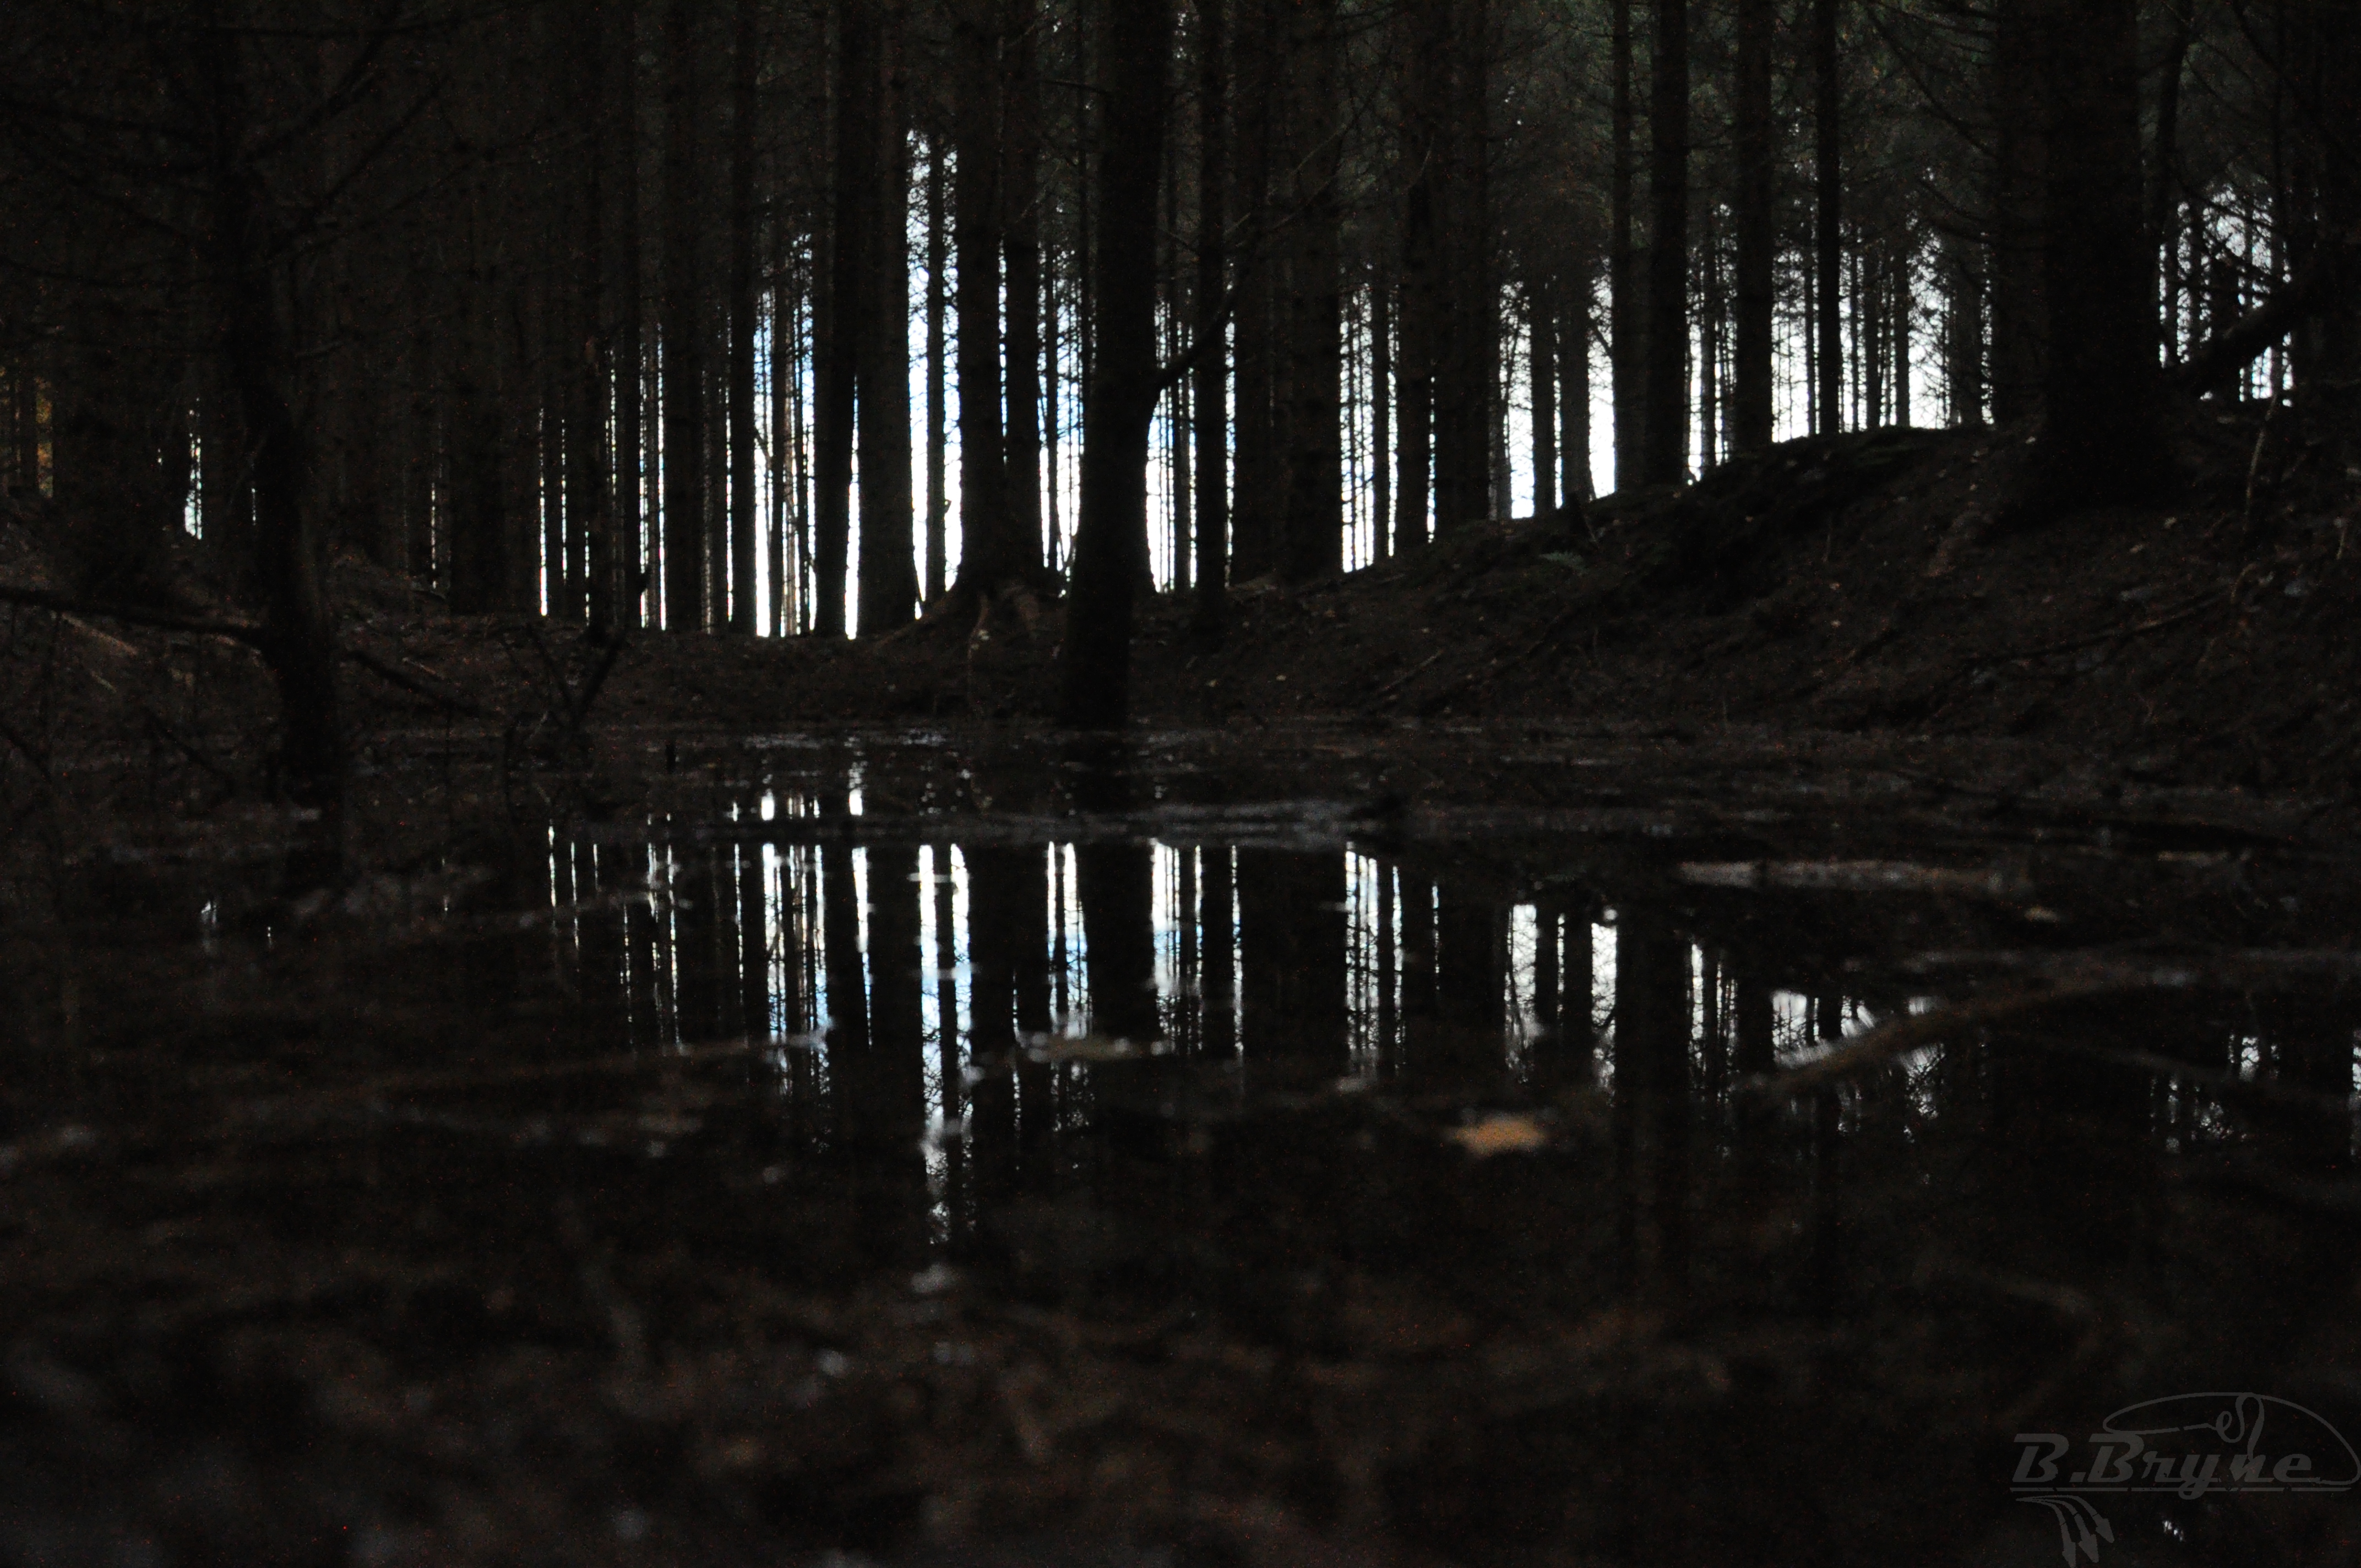 Forrest reflection by Brynedude